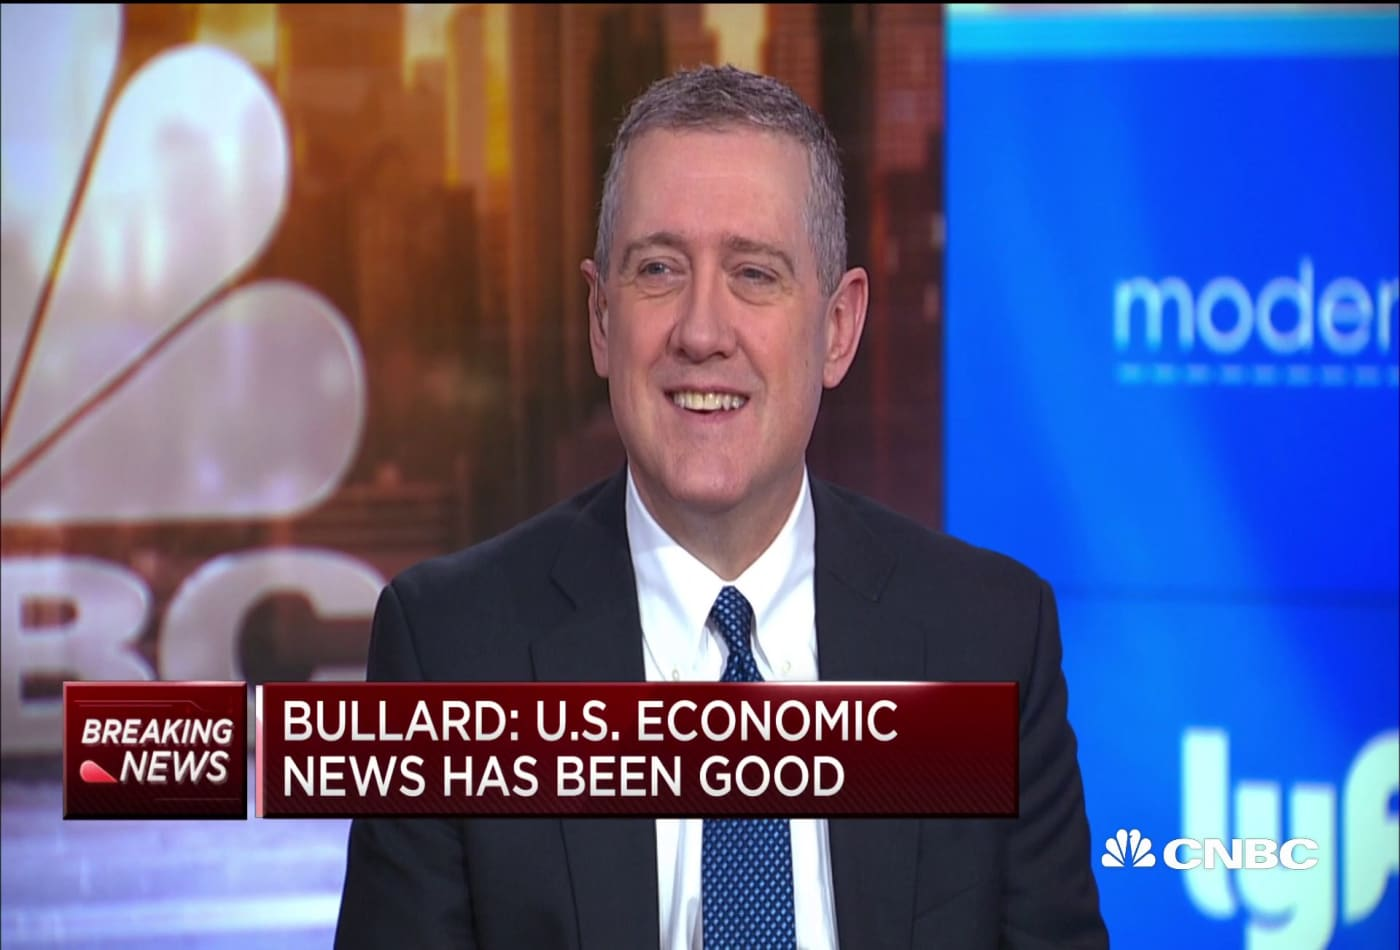 Fed's Bullard: 'Wall Street likes divided government'